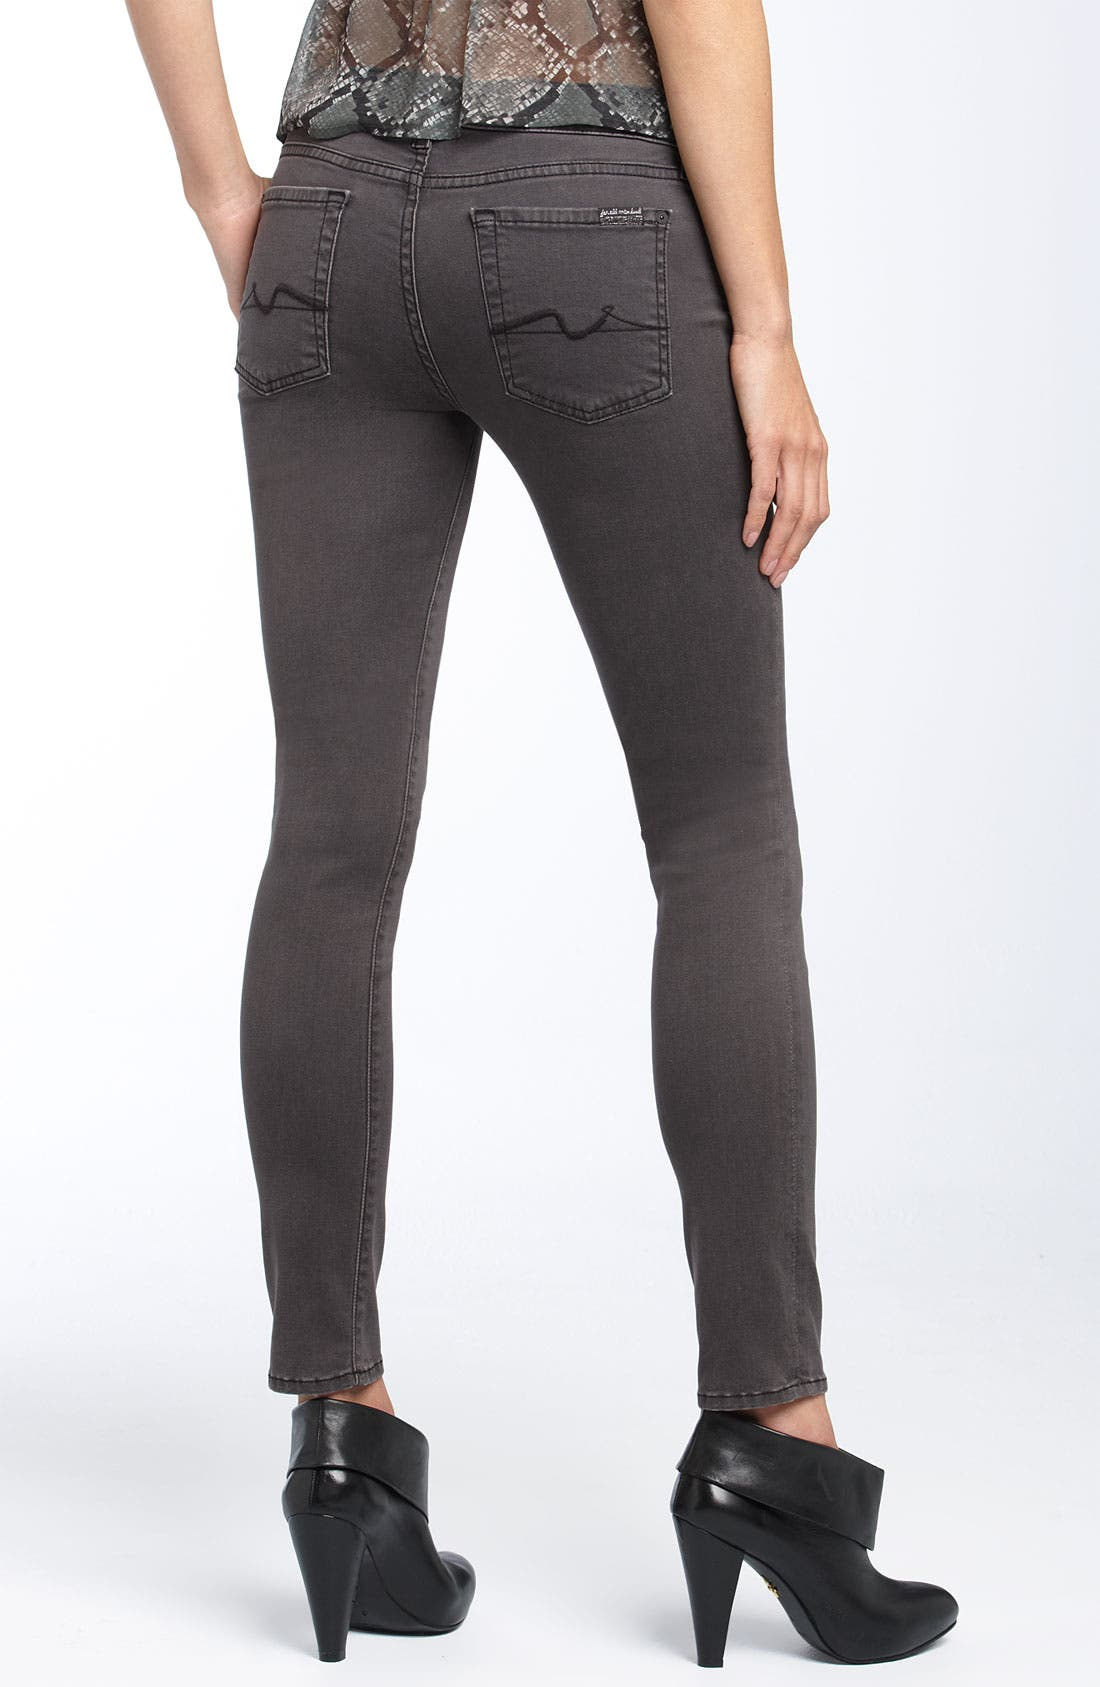 'Gwenevere' Skinny Stretch Jeans,                             Main thumbnail 1, color,                             020